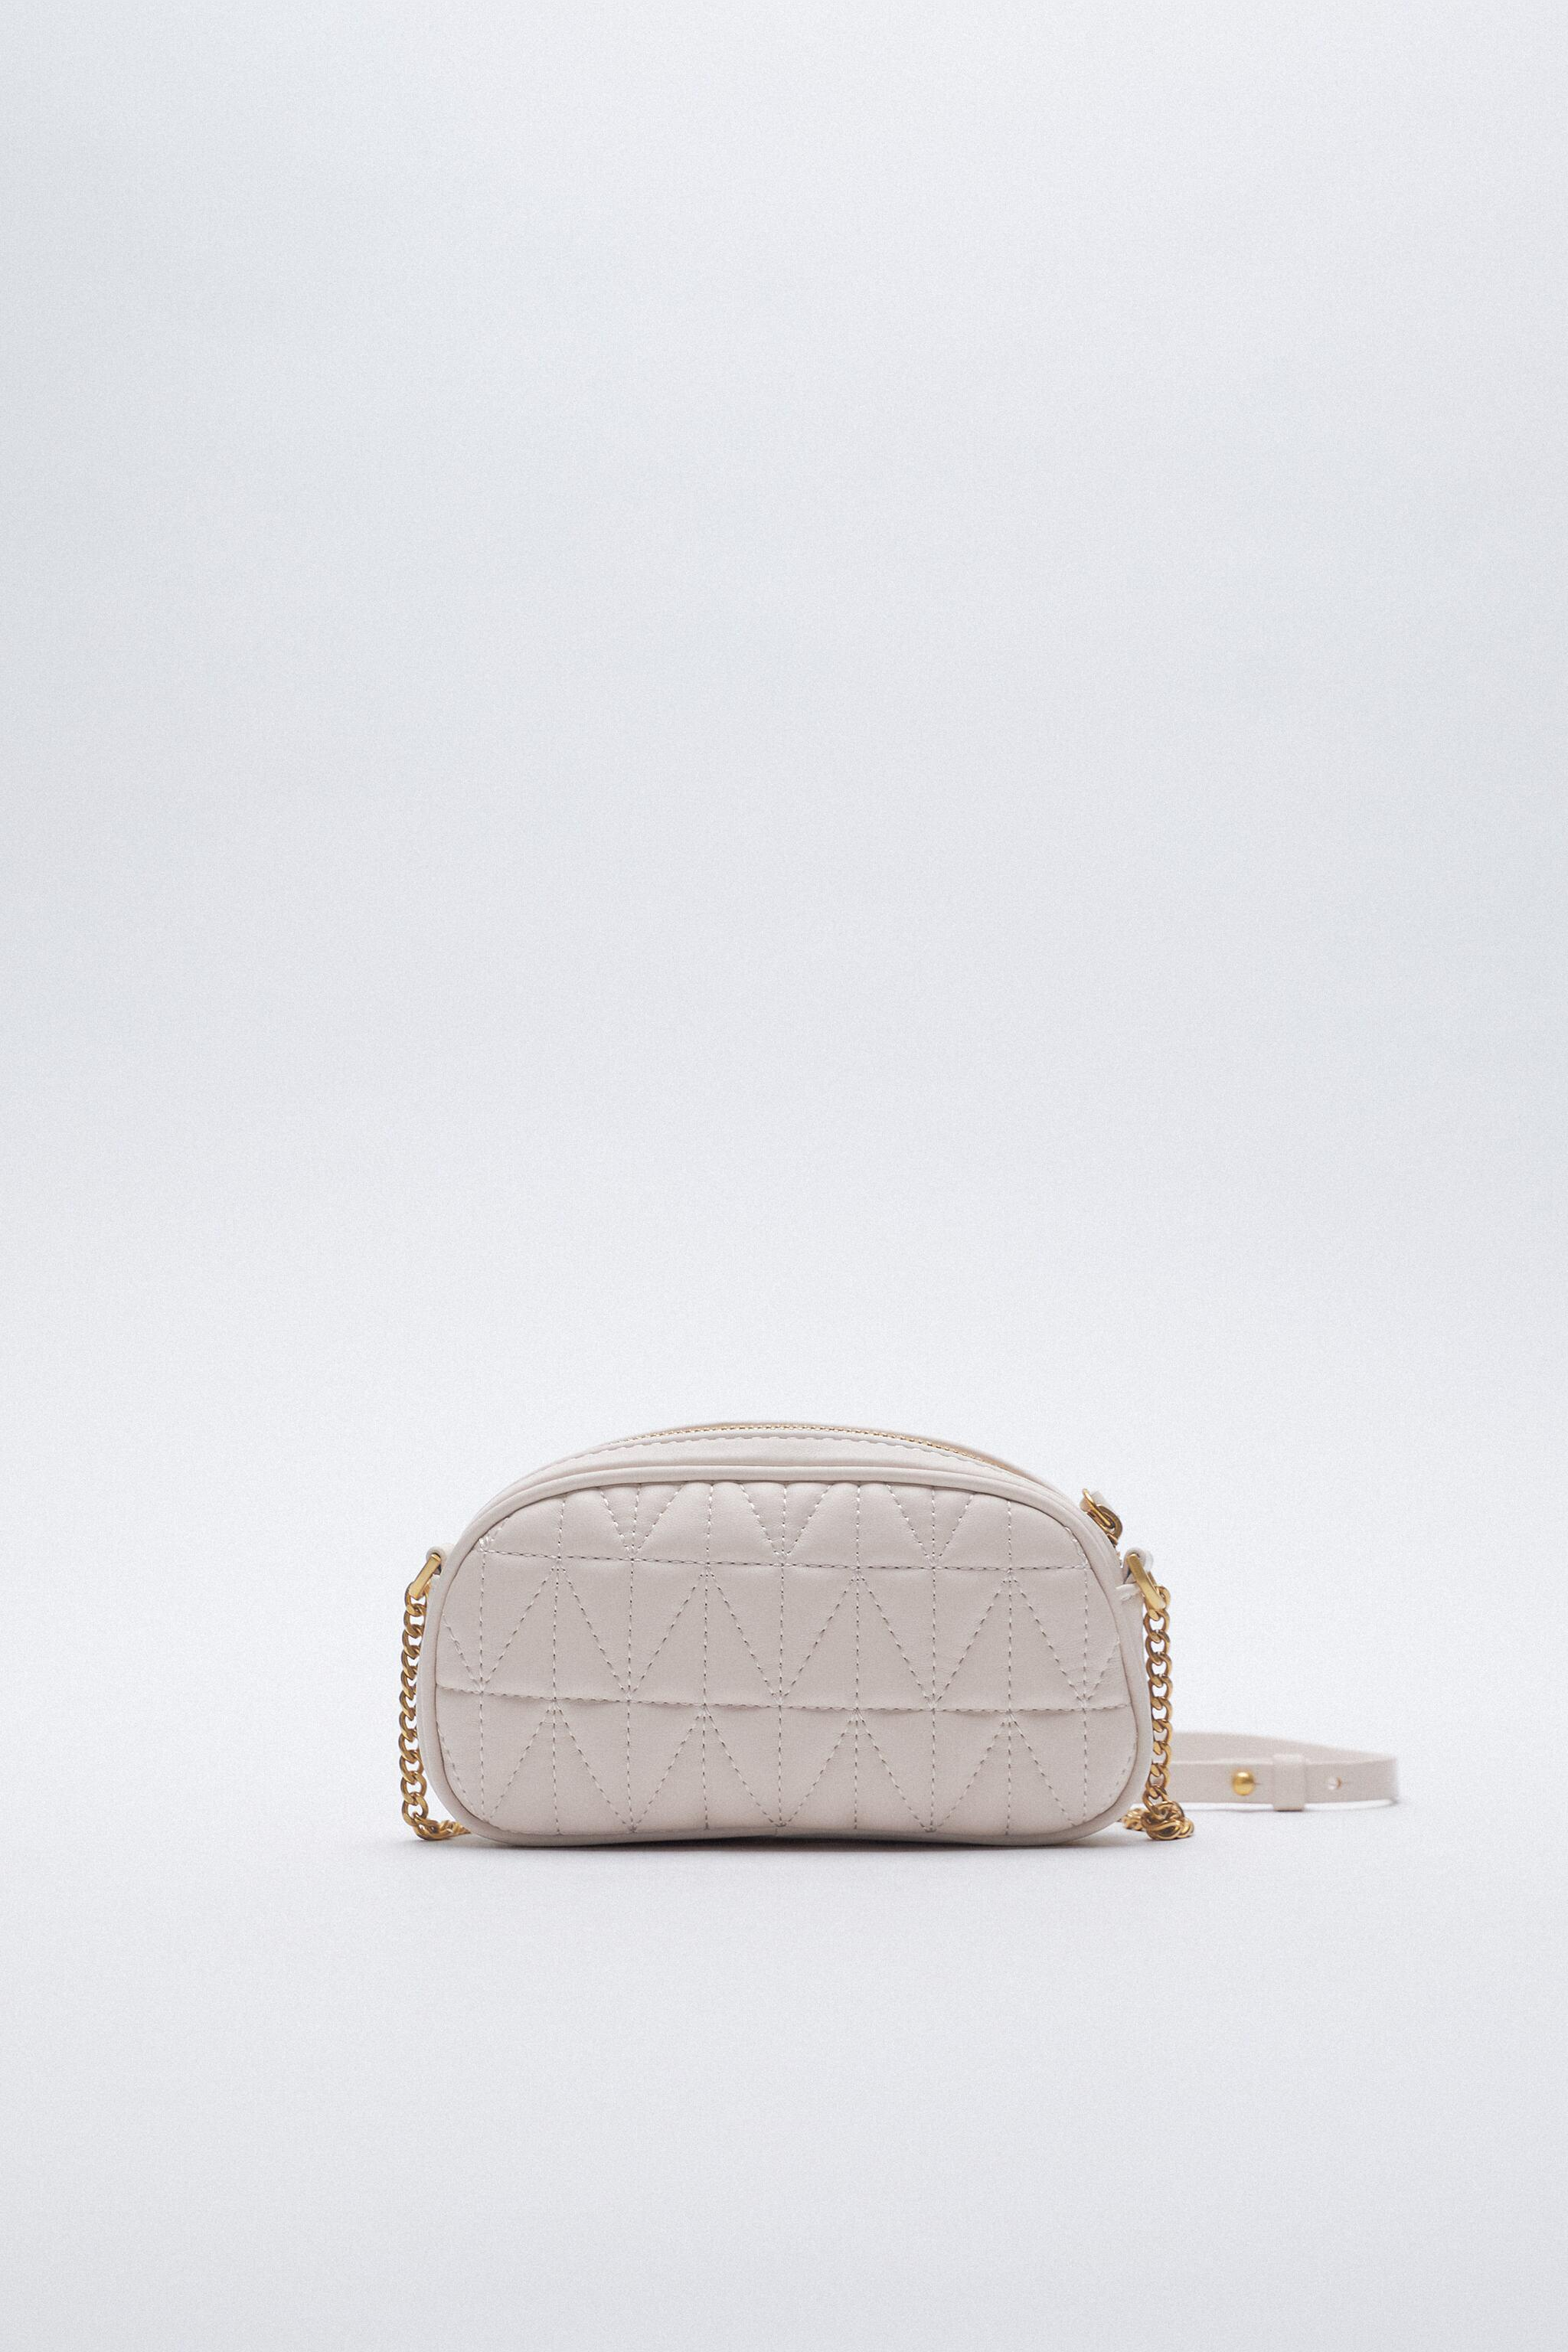 QUILTED CROSSBODY SMART PHONE BAG